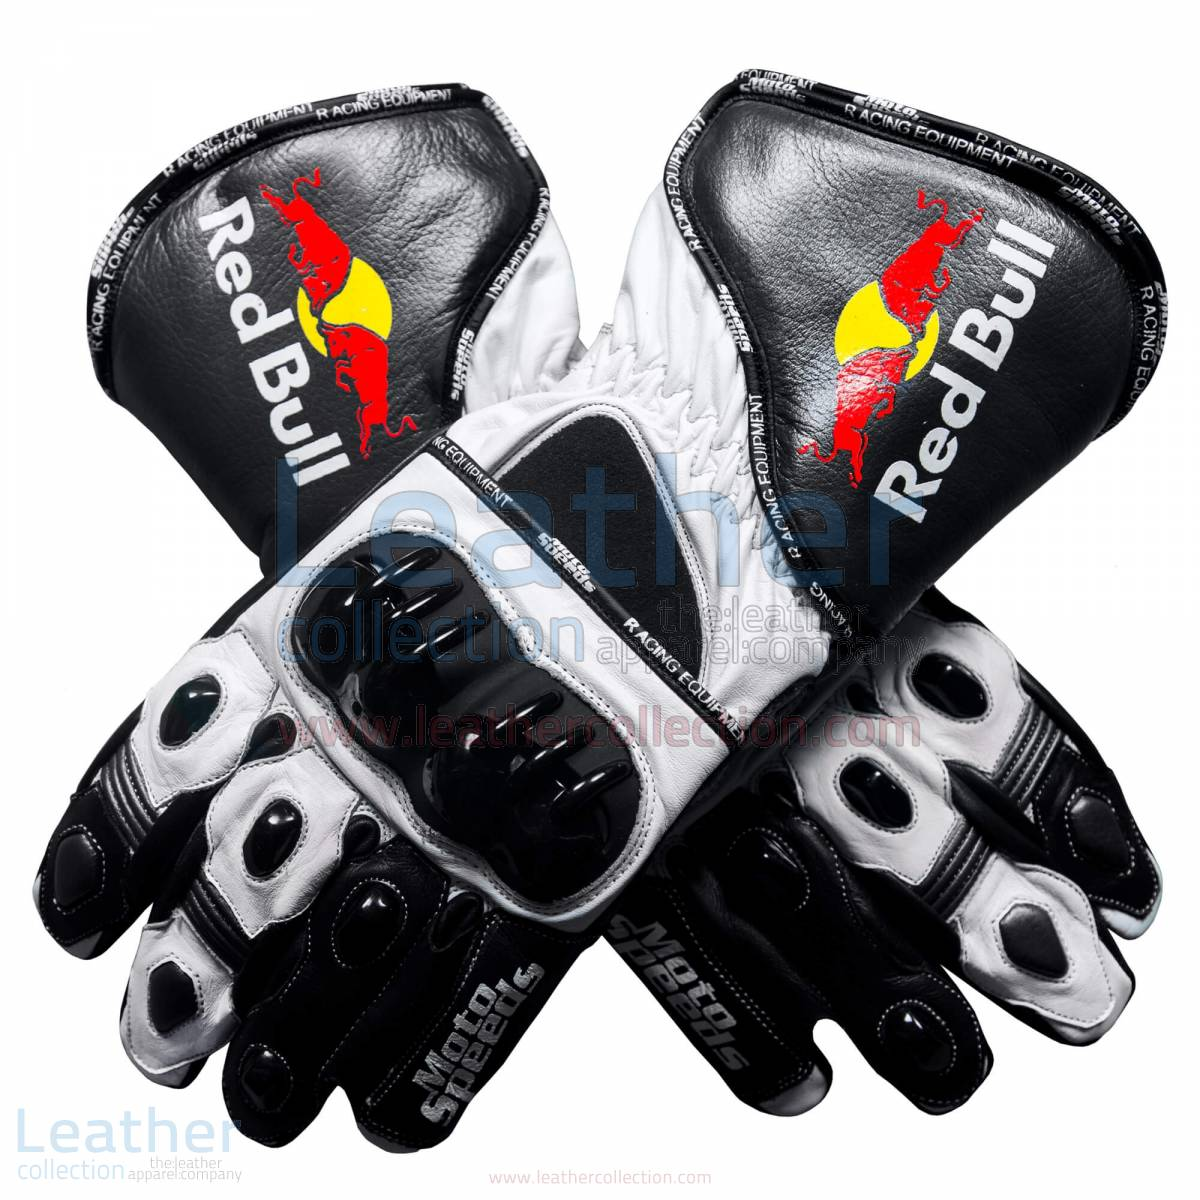 Red Bull Motorcycle Racing Gloves –  Gloves